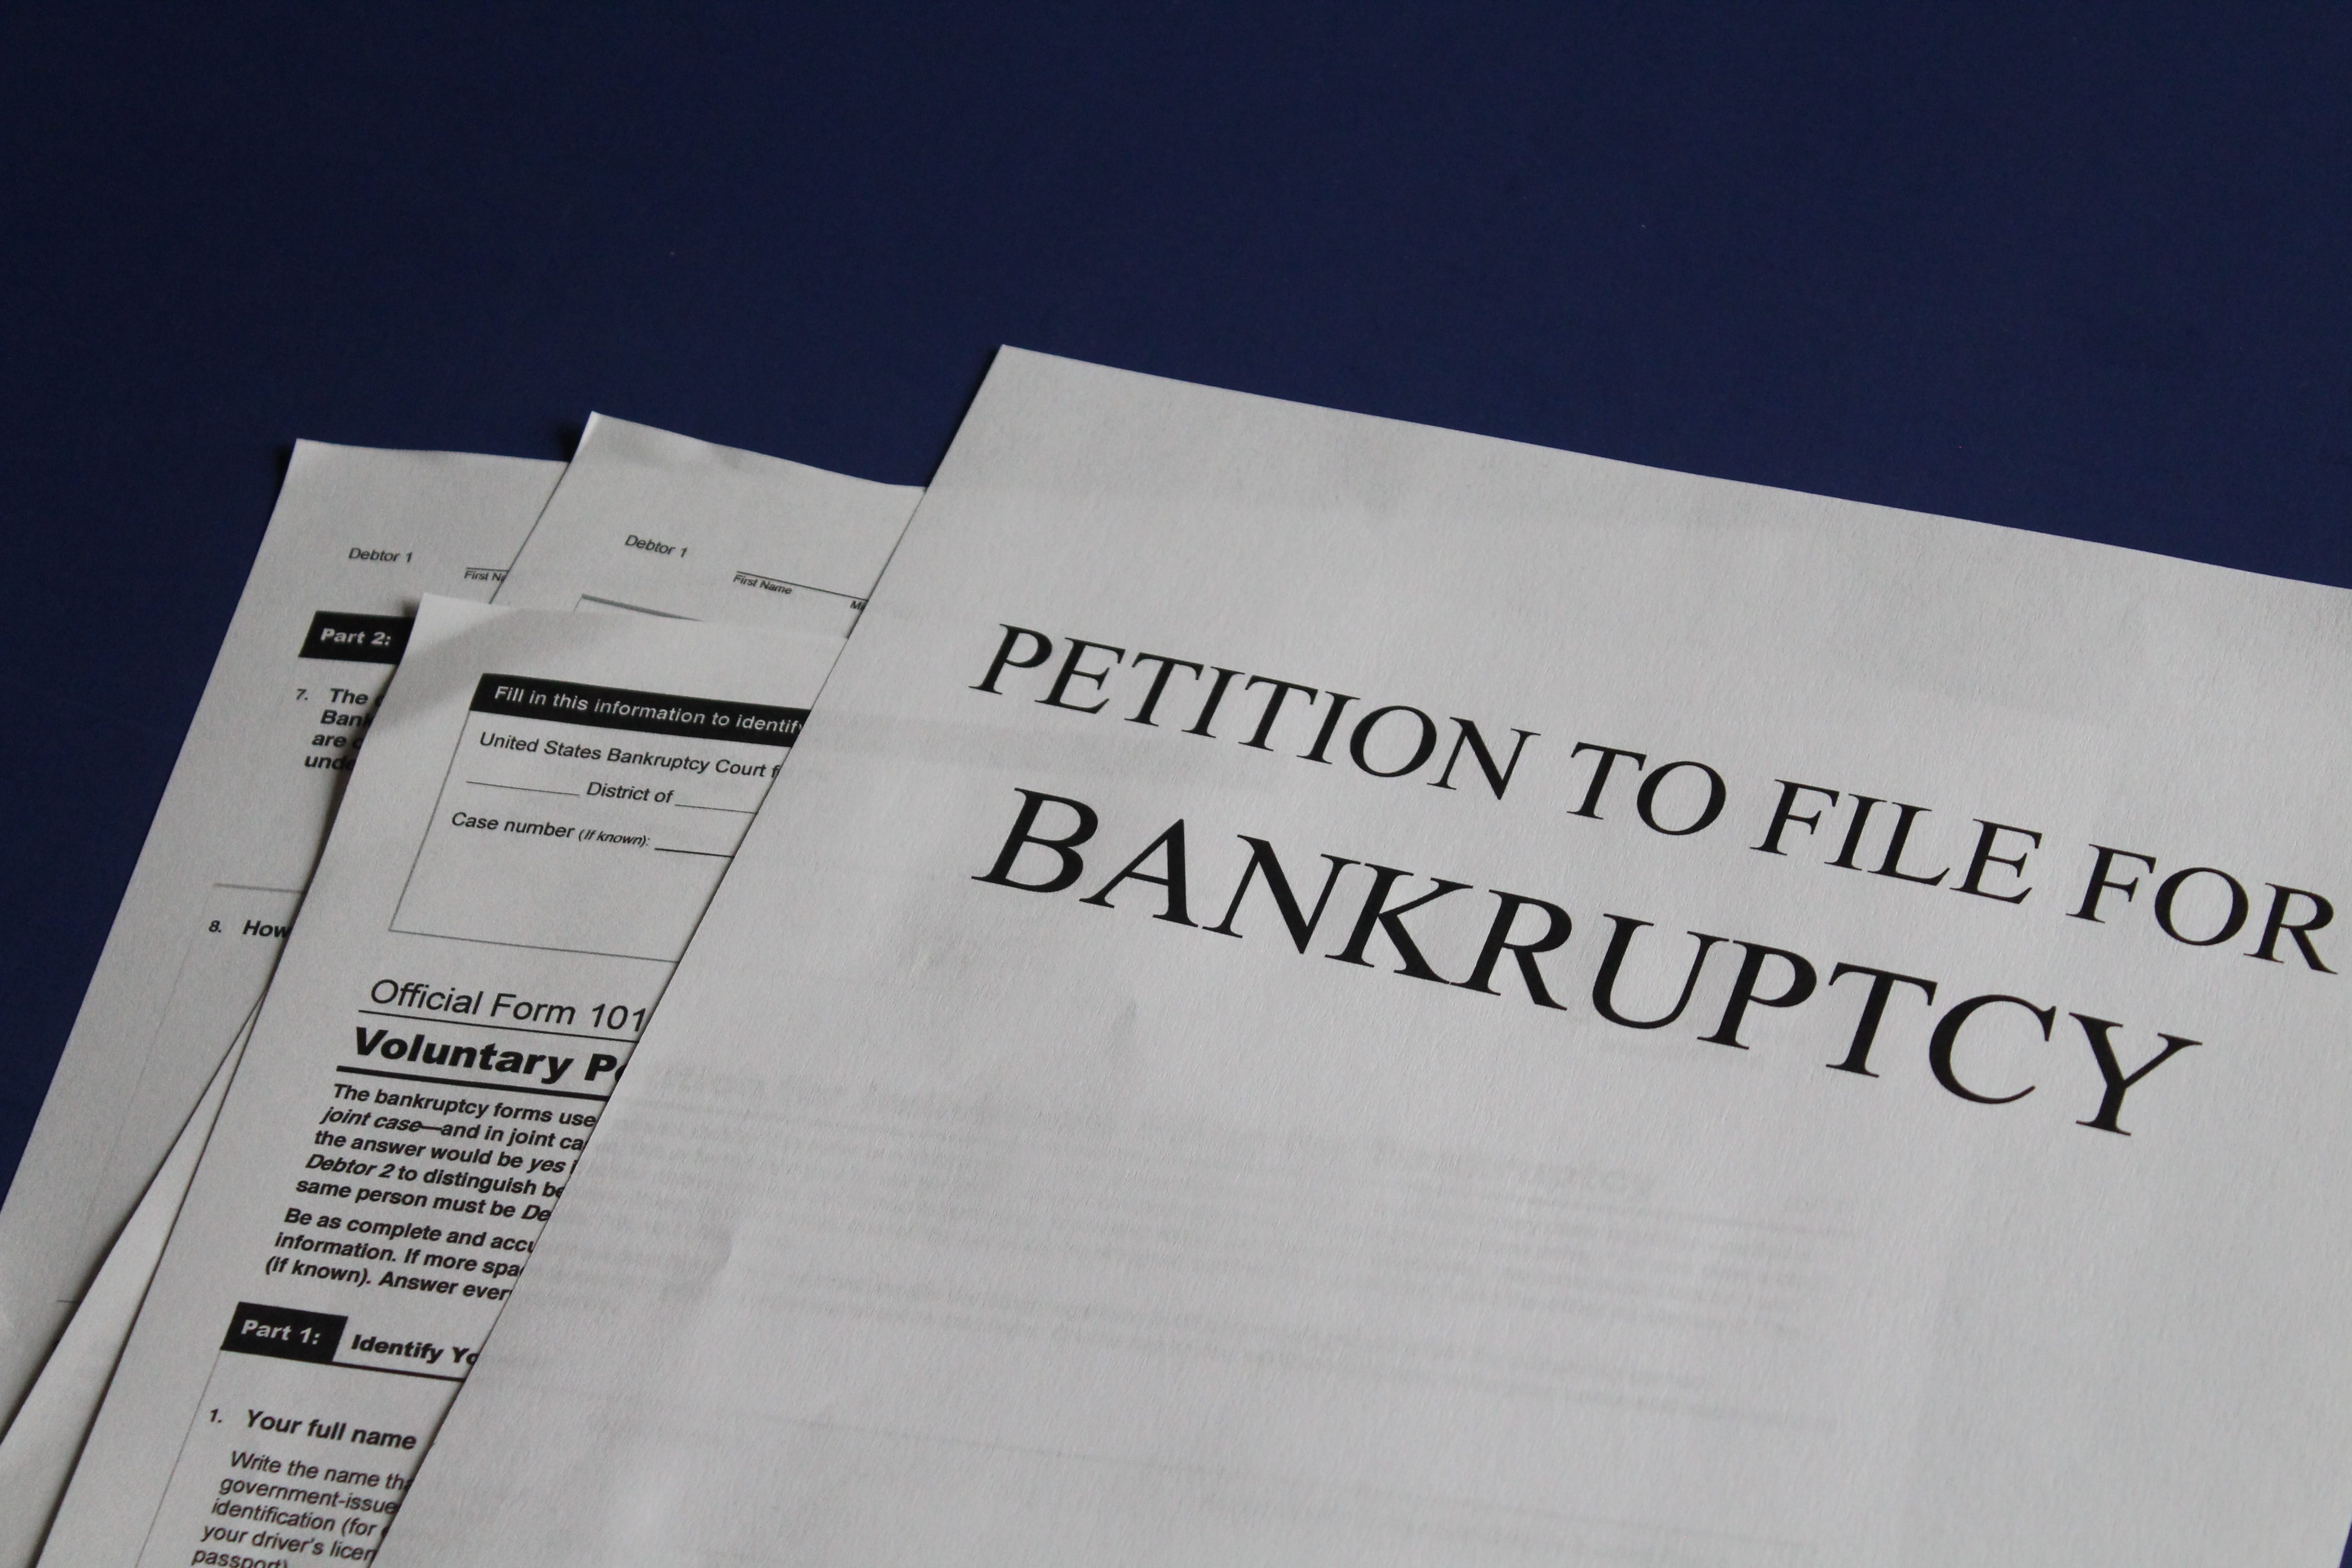 Petition to file bankruptcy; image by Melinda Gimpel, via Unsplash.com.